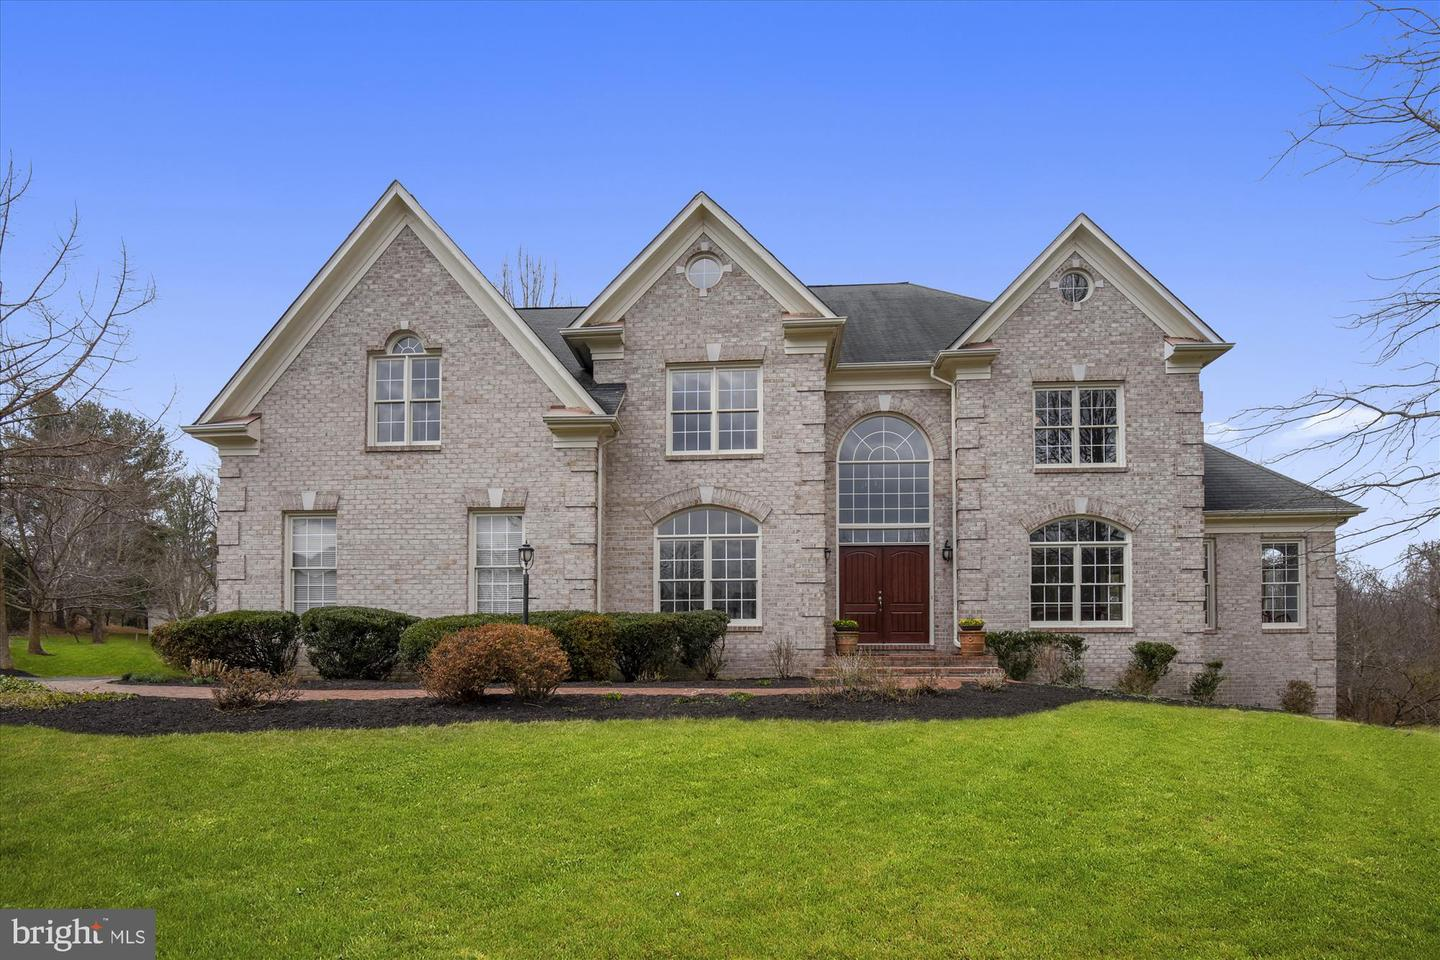 860 FORESTVILLE MEADOWS DRIVE, GREAT FALLS, Virginia